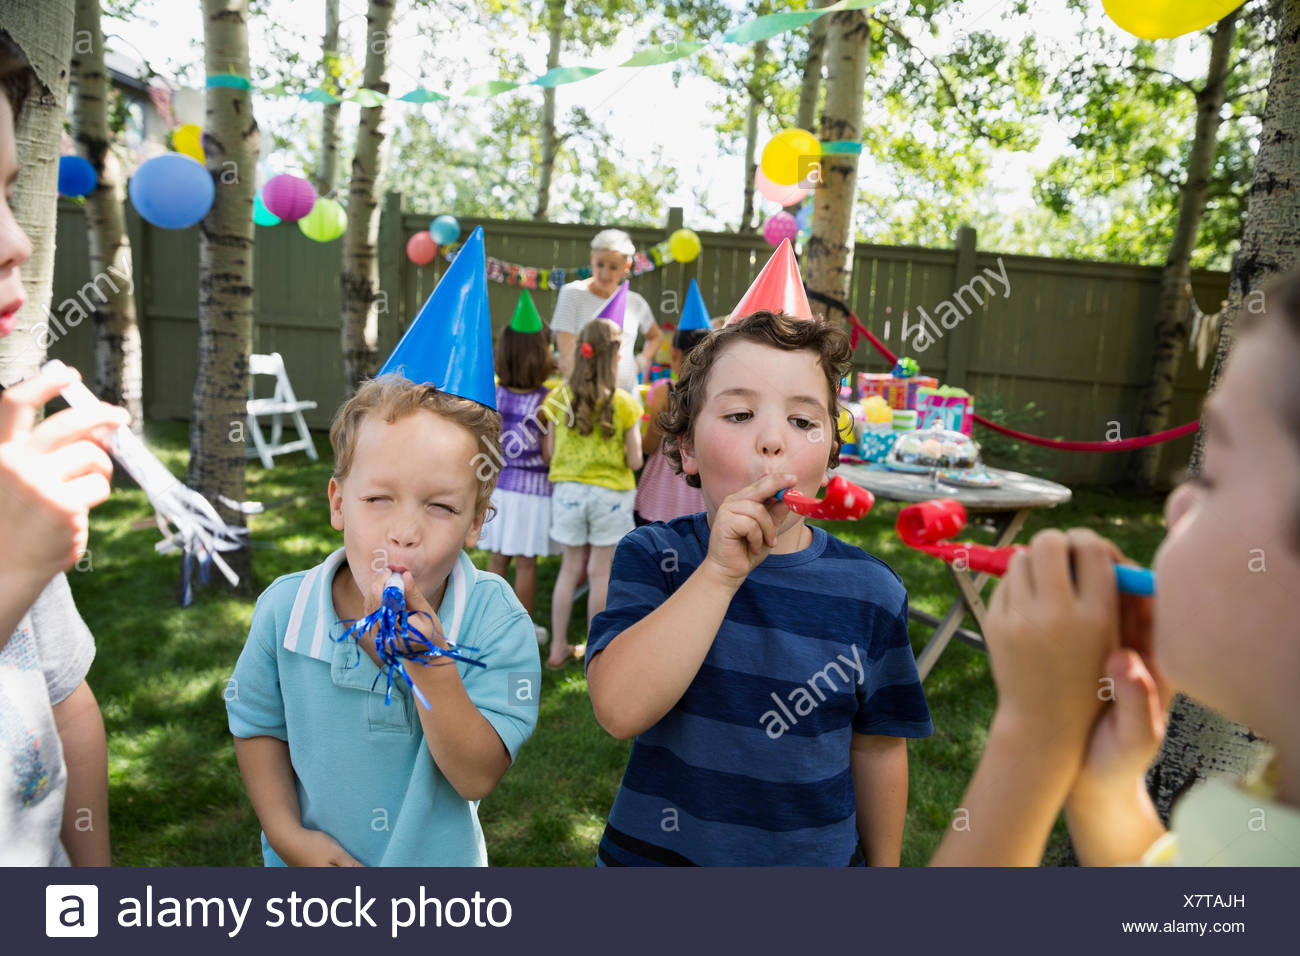 Kids in birthday party hats blowing party favors - Stock Image